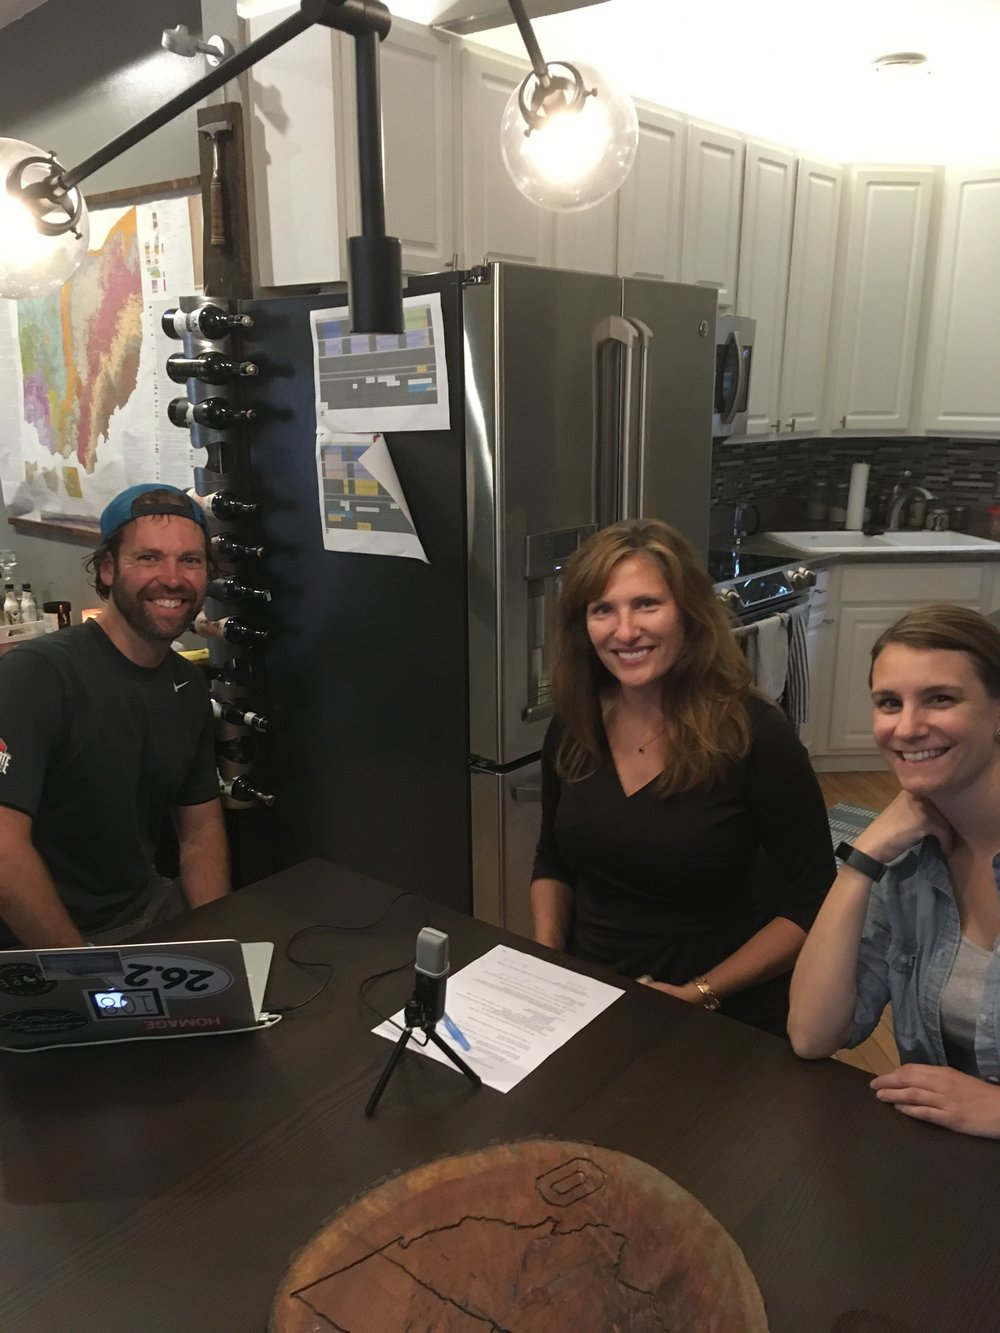 Mike R, Stacey K, and Amy K getting ready to record in person!